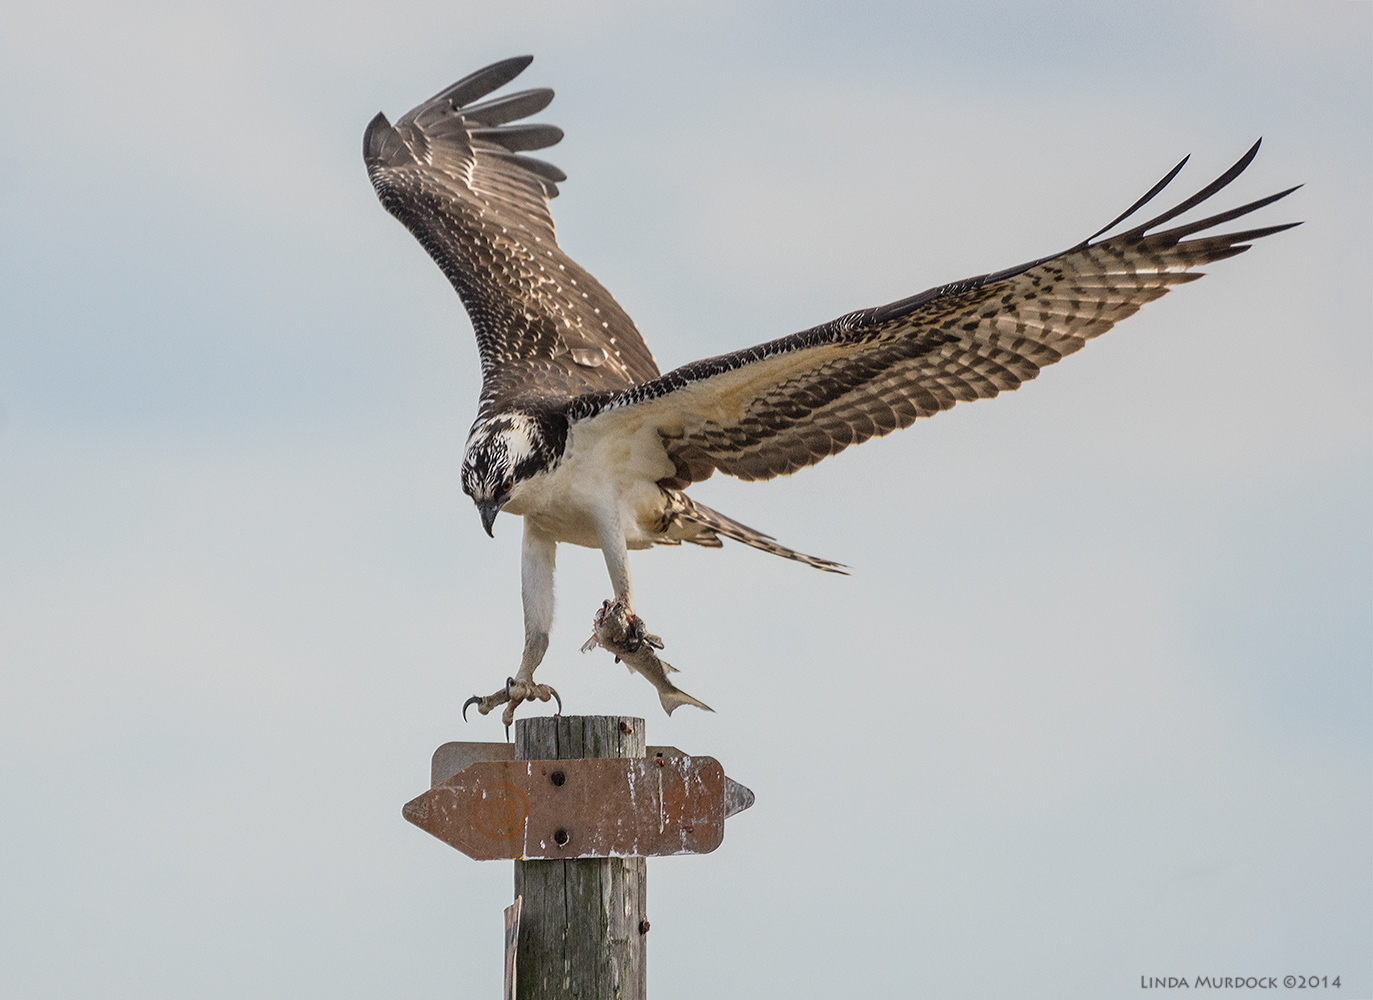 September Osprey landing with his fish    Sony A77 II with 70-400mm G21/2000 sec. f/5.6 ISO 640